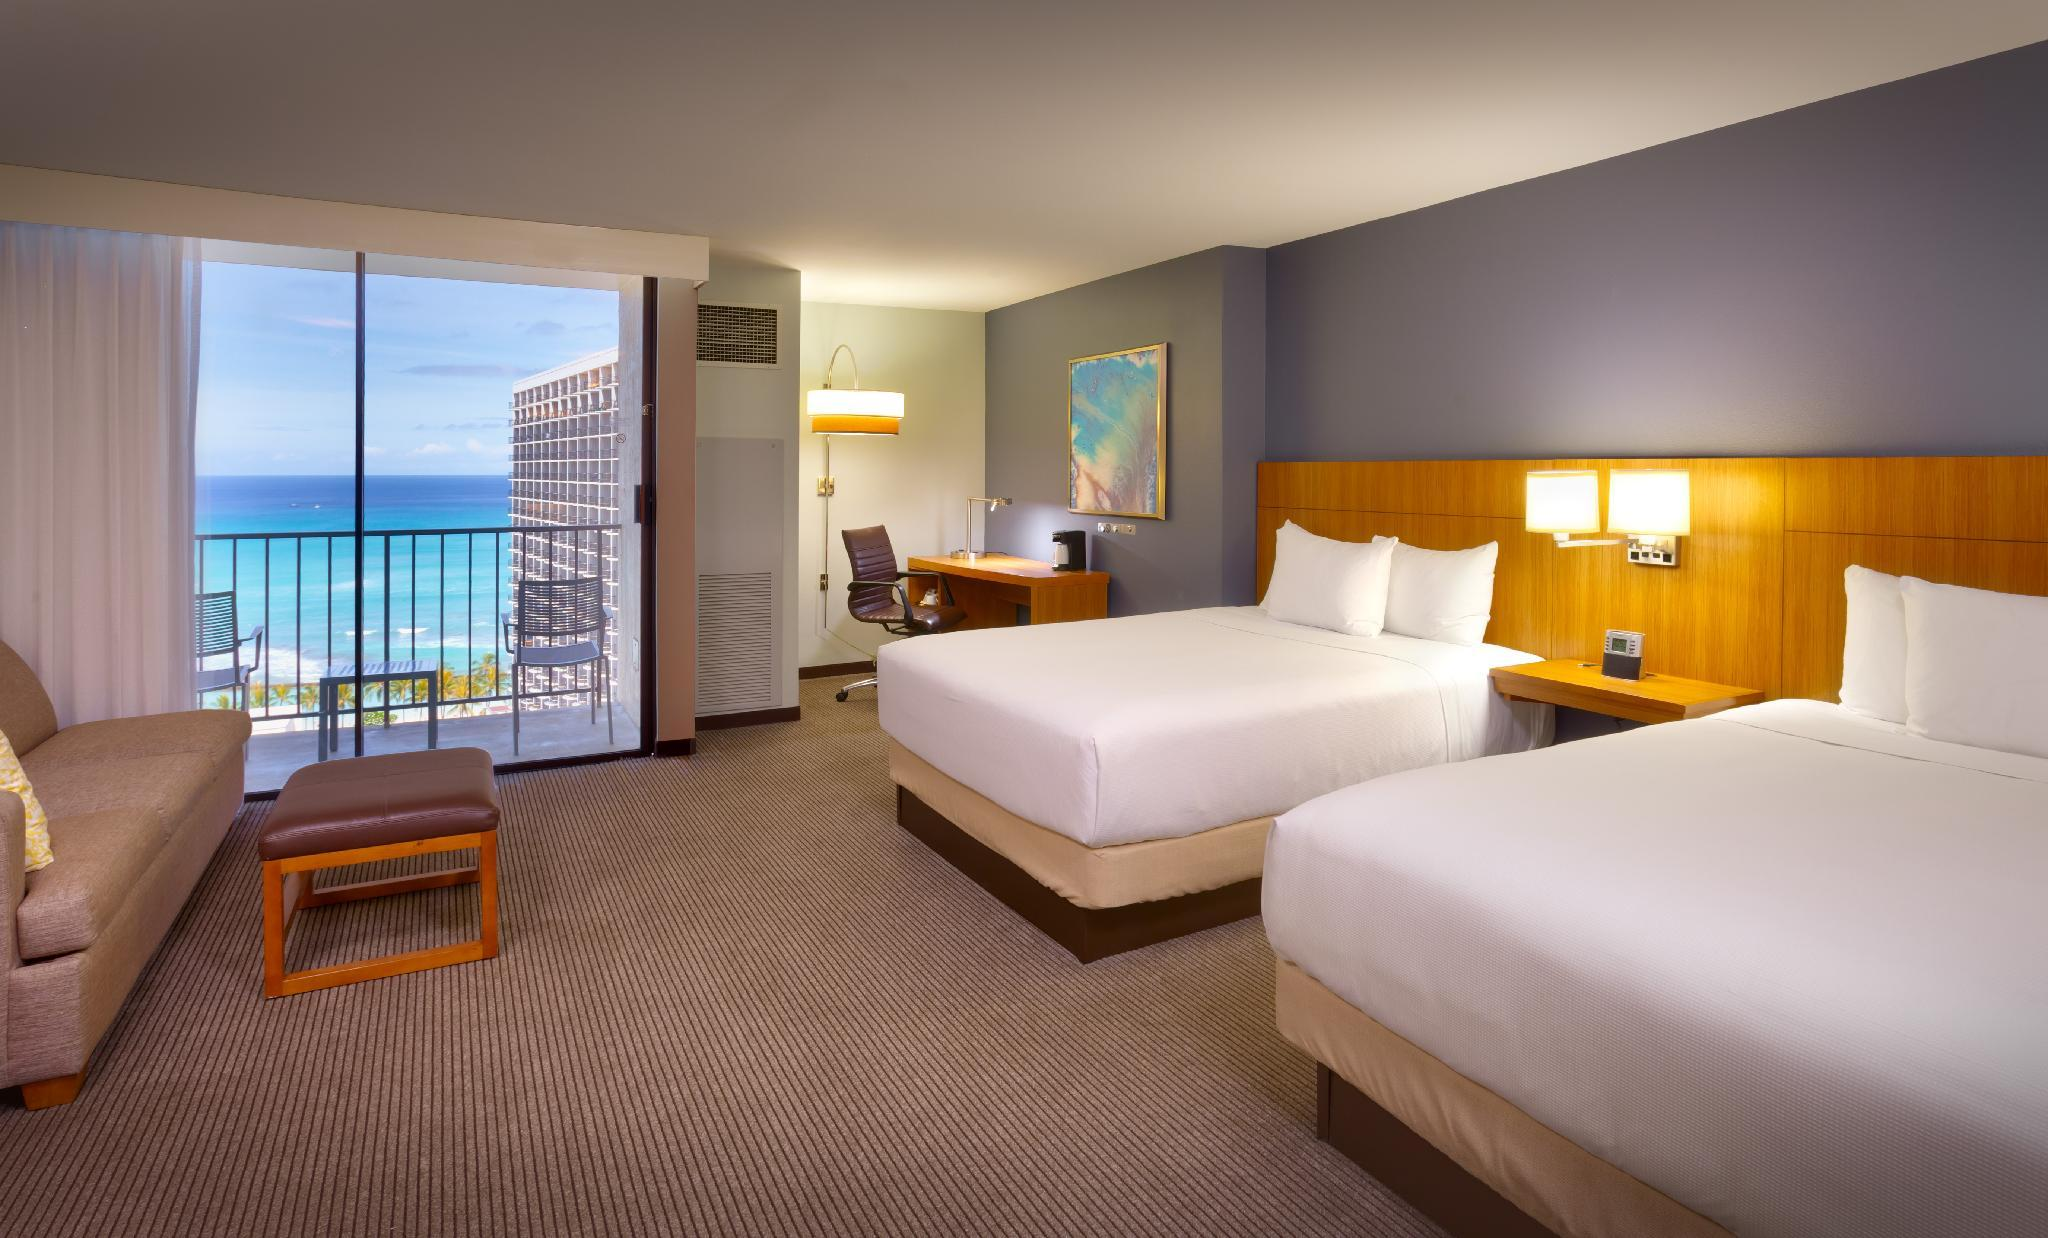 Specialty Queen Room with Two Queen Beds and Ocean View